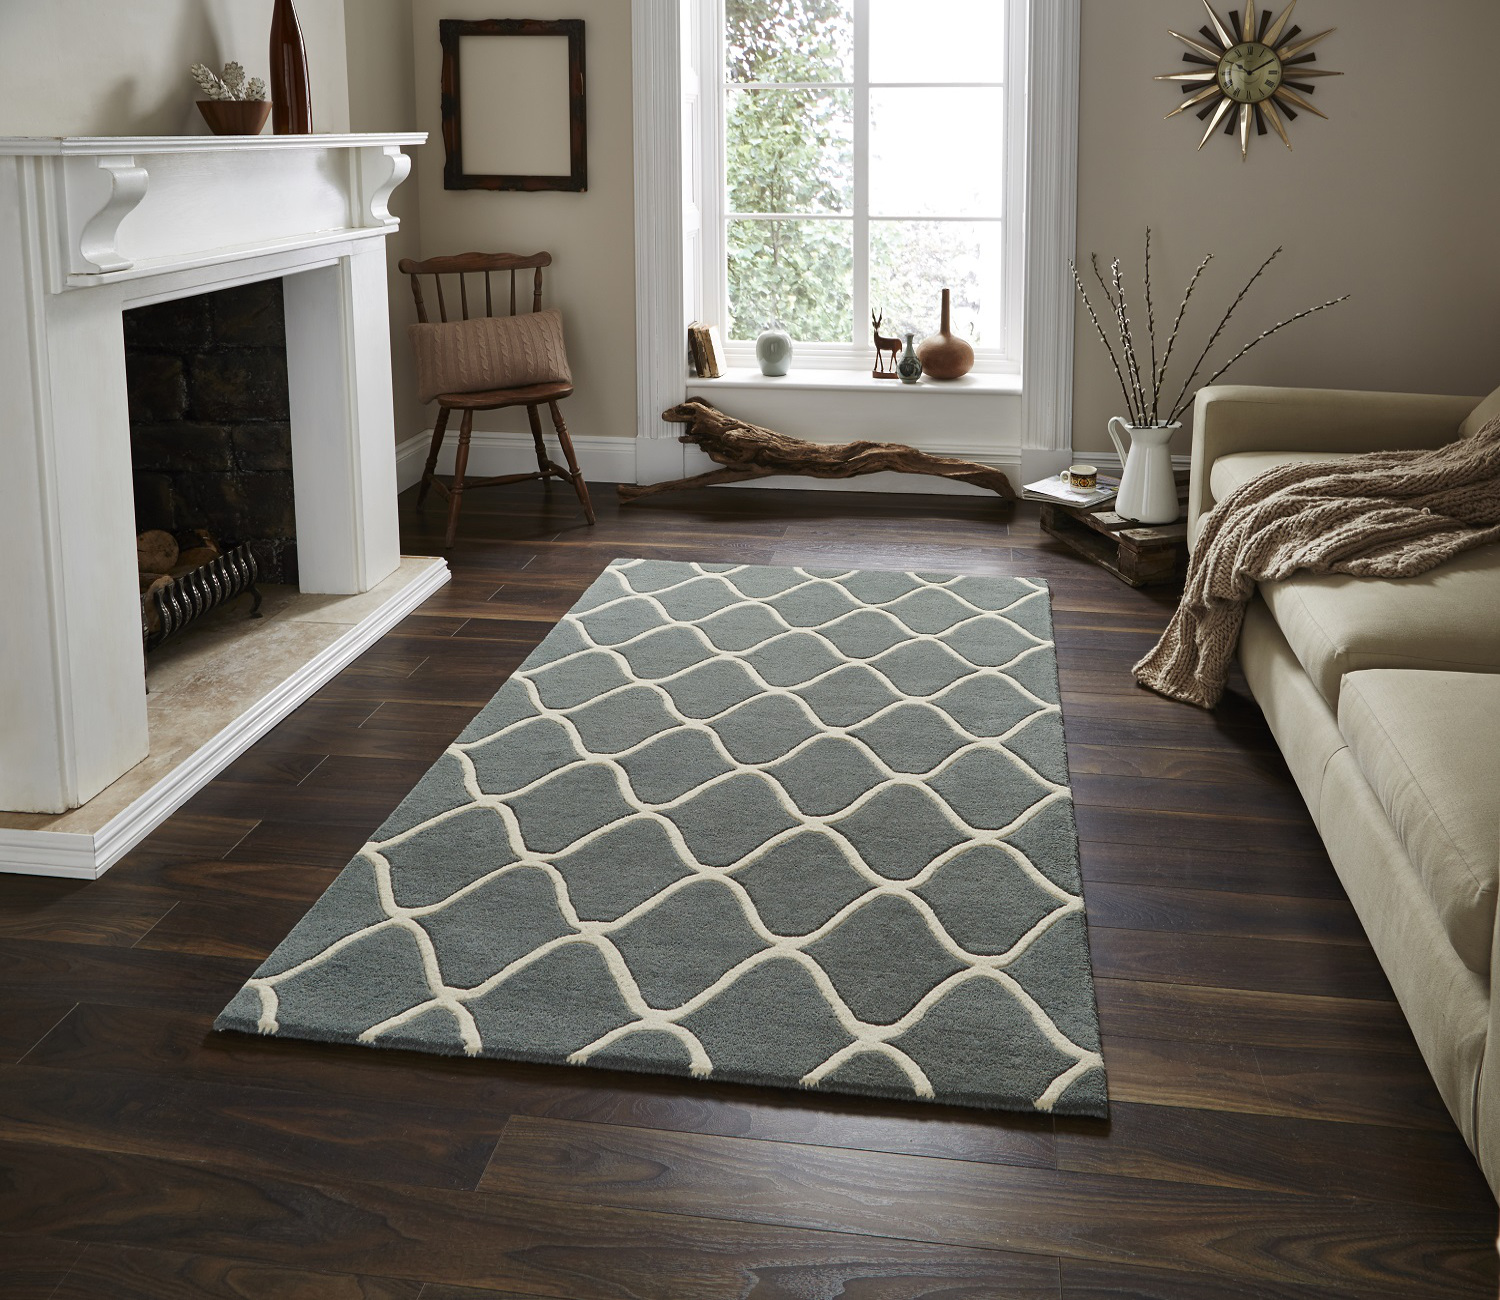 Home Furniture Rugs: Wave Design Hand Tufted 100% Wool Rug Contemporary Home